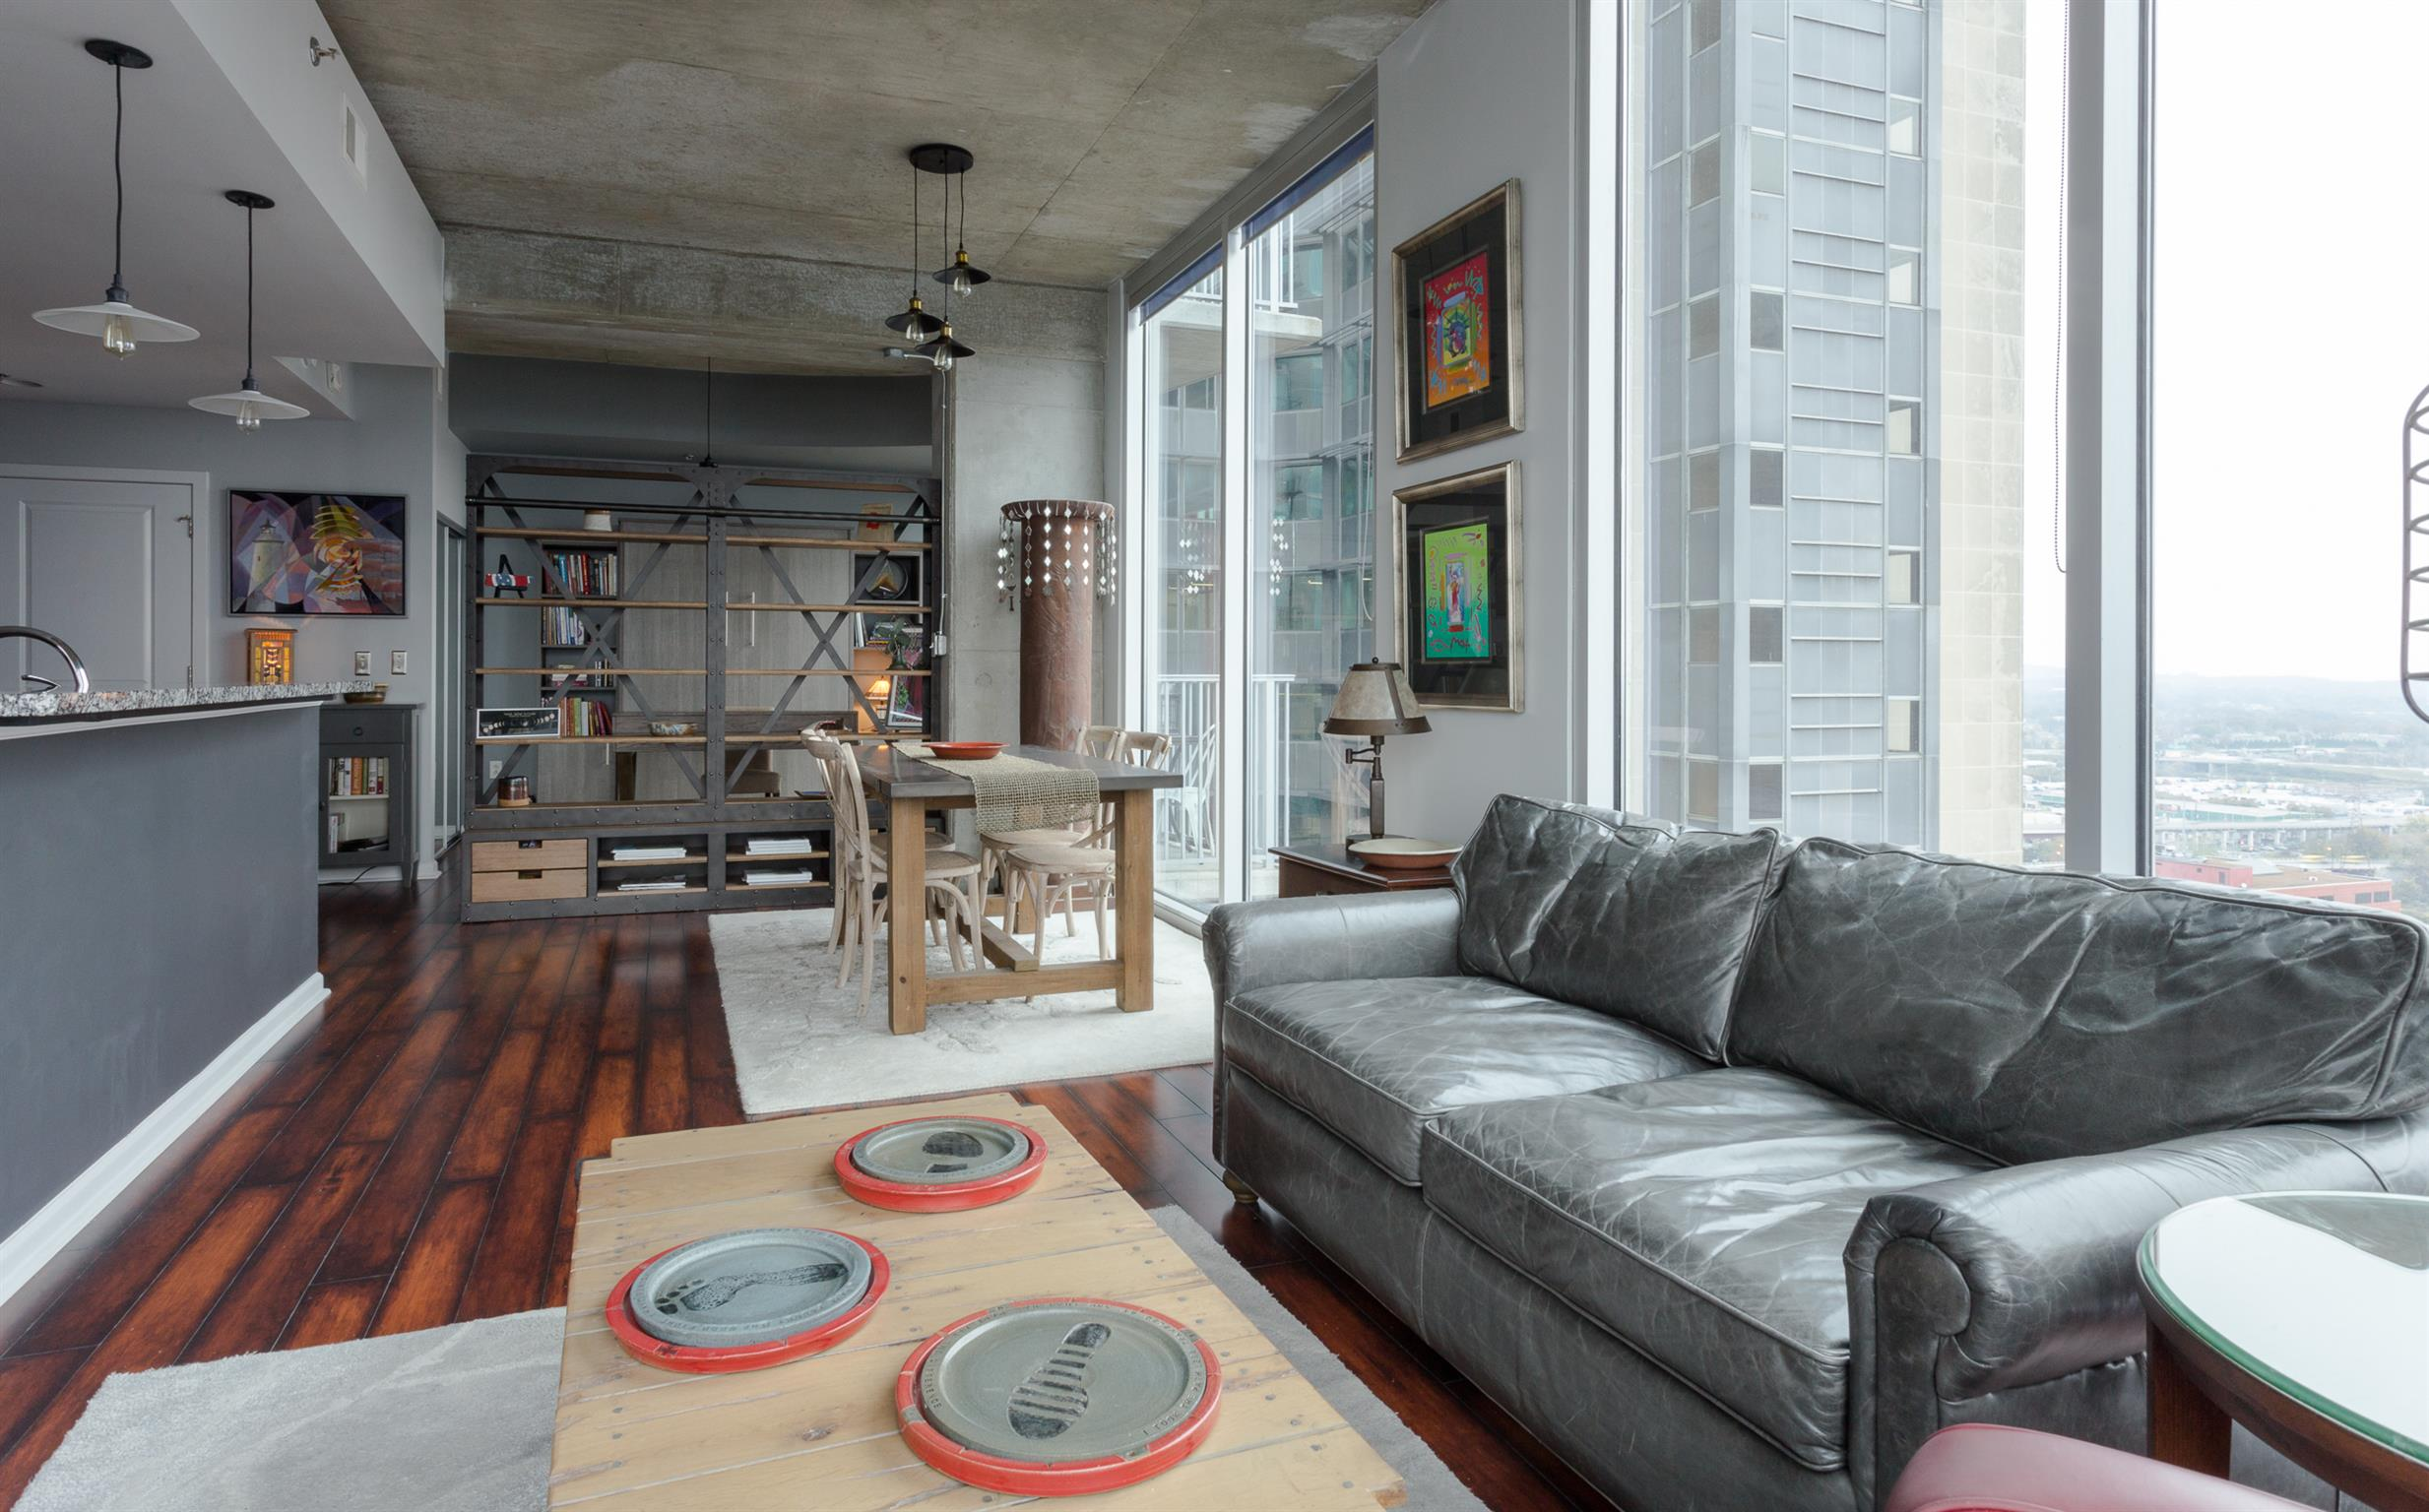 """SPECTACULAR RENOVATION WITH UNOBSTRUCTED CORNER VIEWS! See the crowds at Titans stadium and walk on over. Custom tile. 5"""" plank hardwoods. Custom Murphy bed. 2 parking spaces. The best of city living."""